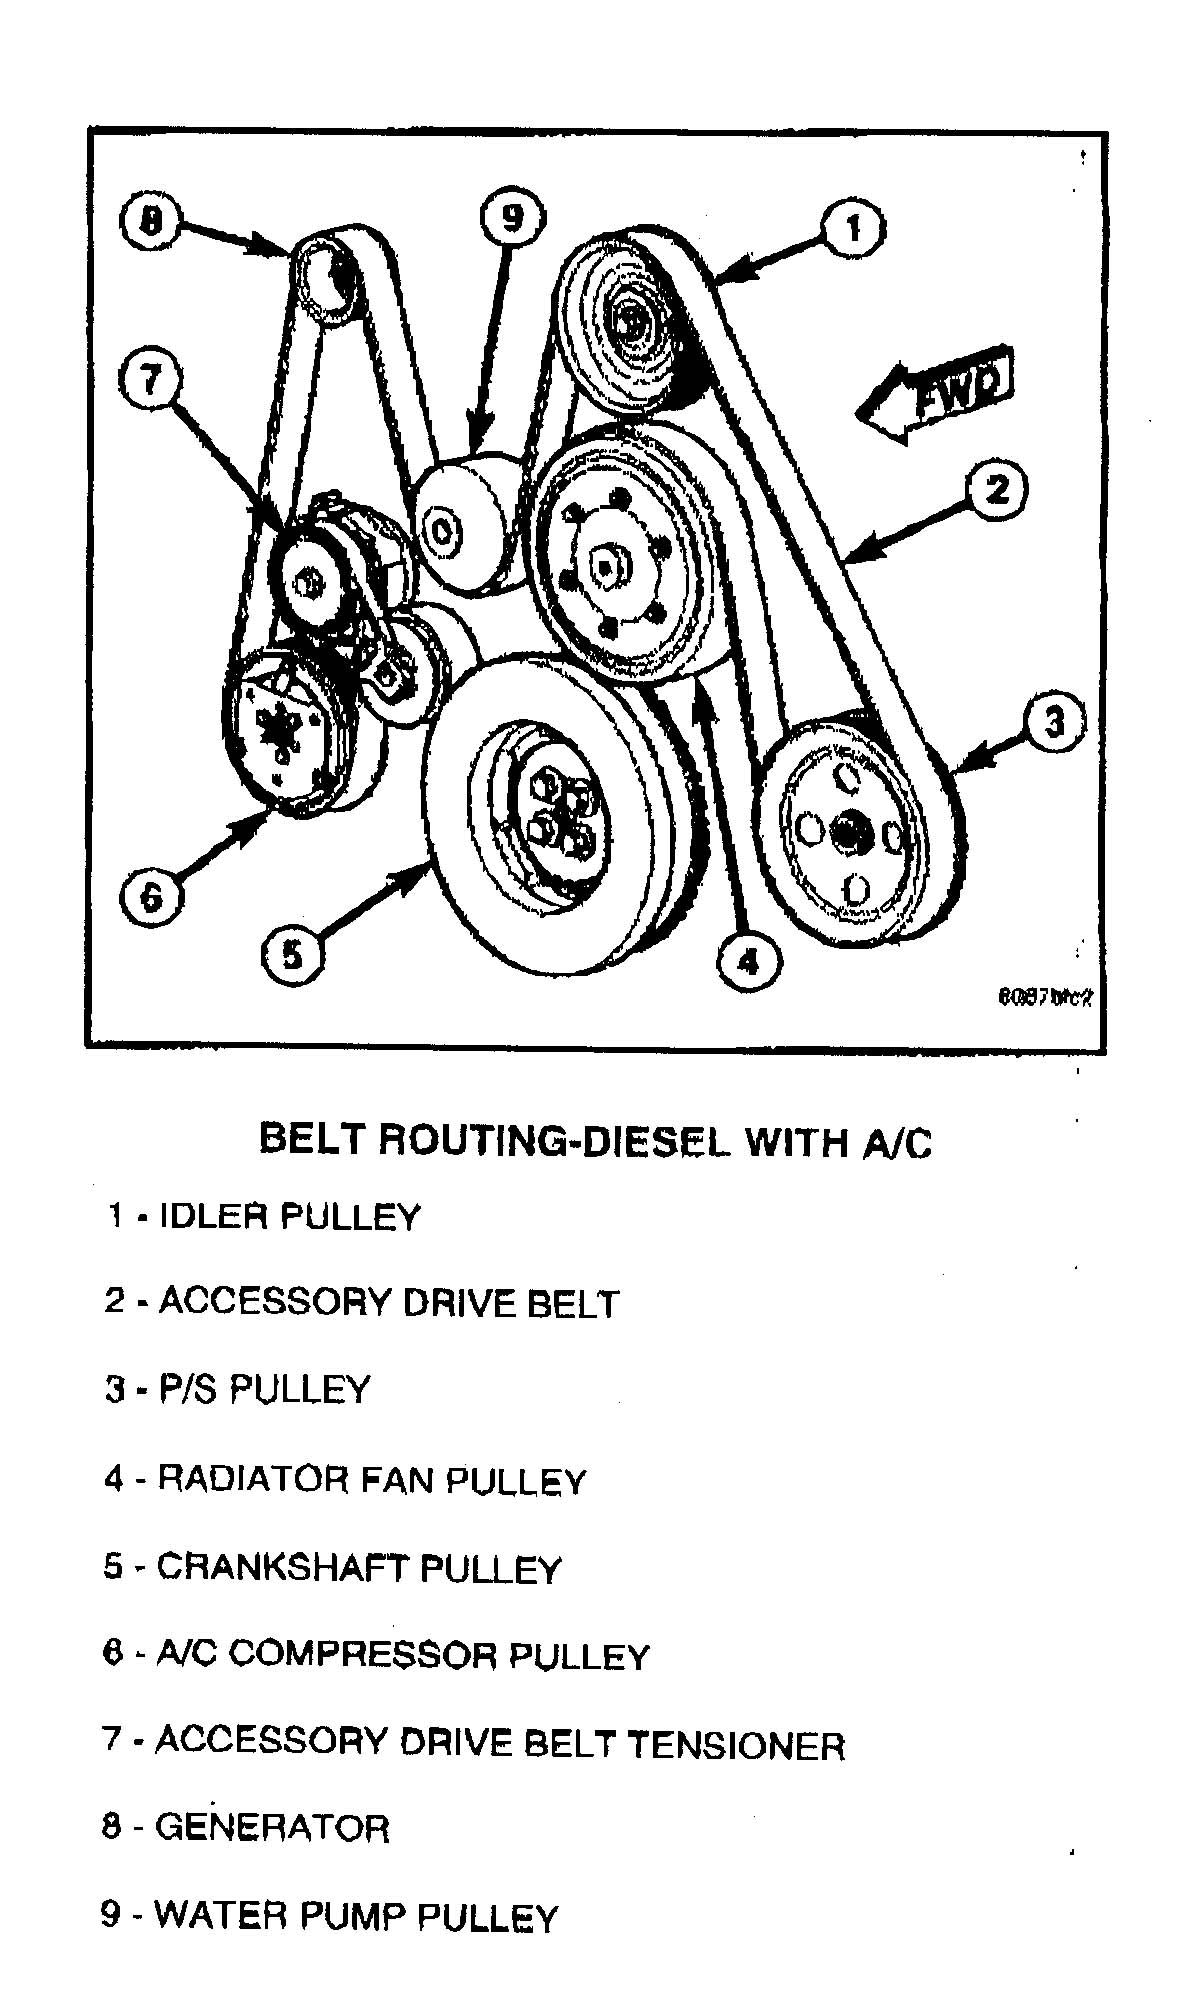 6 7 Belt Routing Diagram Dodge Diesel Diesel Truck Resource Forums Truck Engine Diesel Trucks Diesel